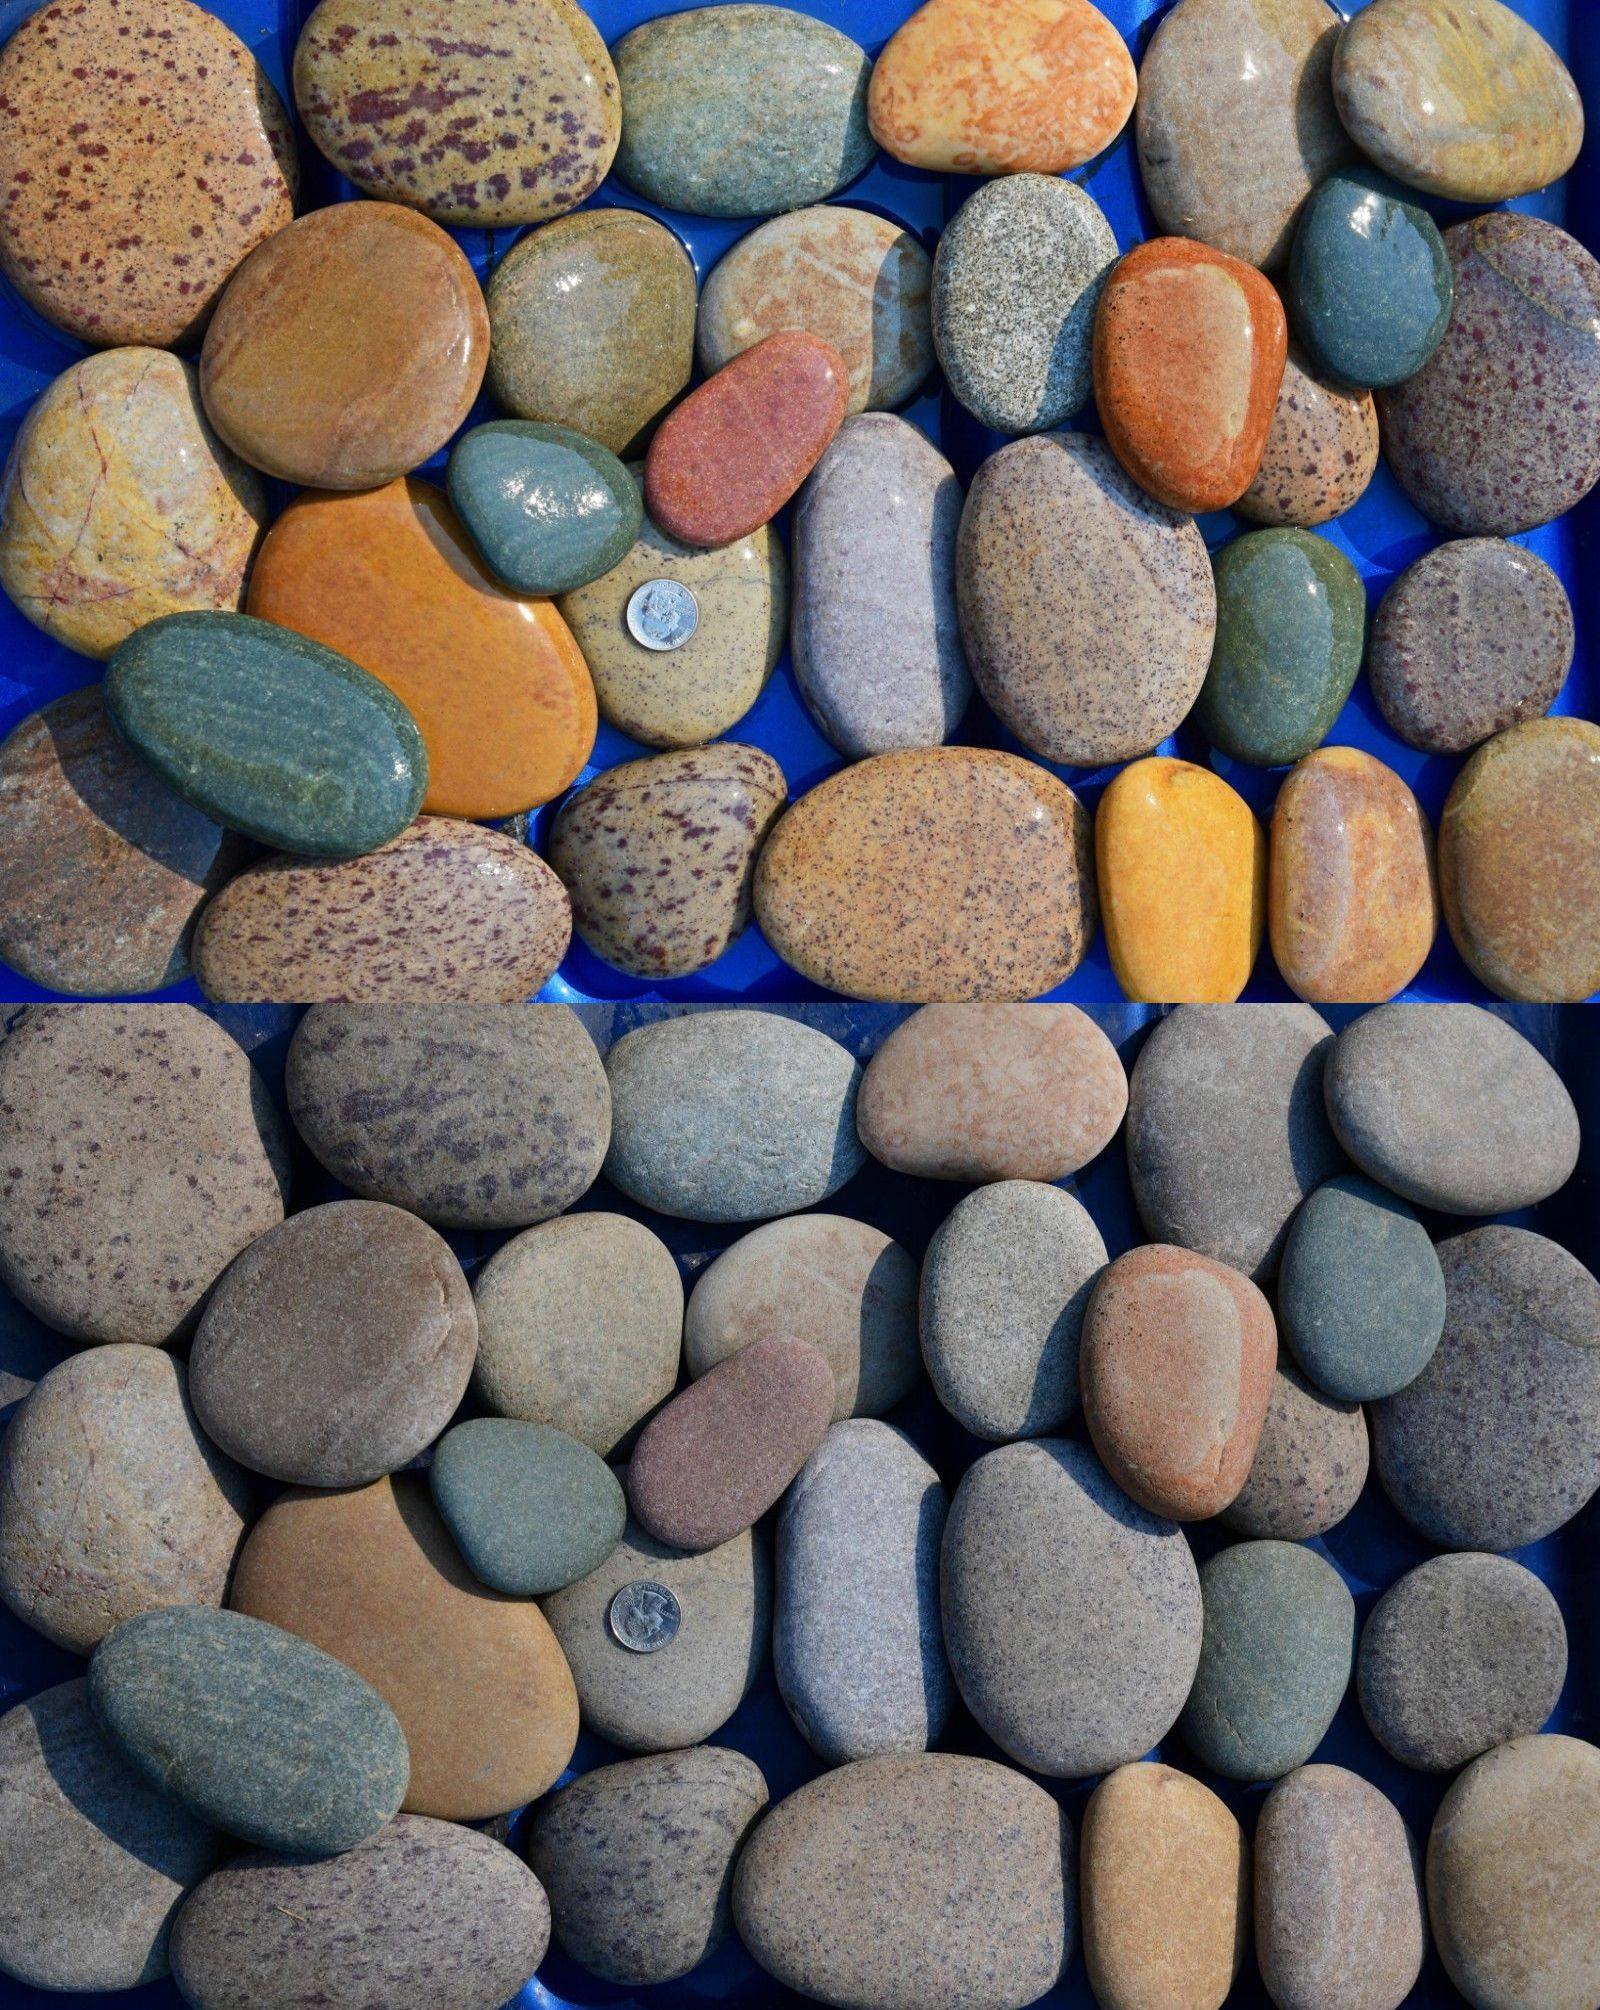 30 Lbs Lot 1 Rock Painting River Rocks Unpainted Smooth Medium Size Art Mandala River Rock Landscaping Landscaping With Rocks Painted River Rocks